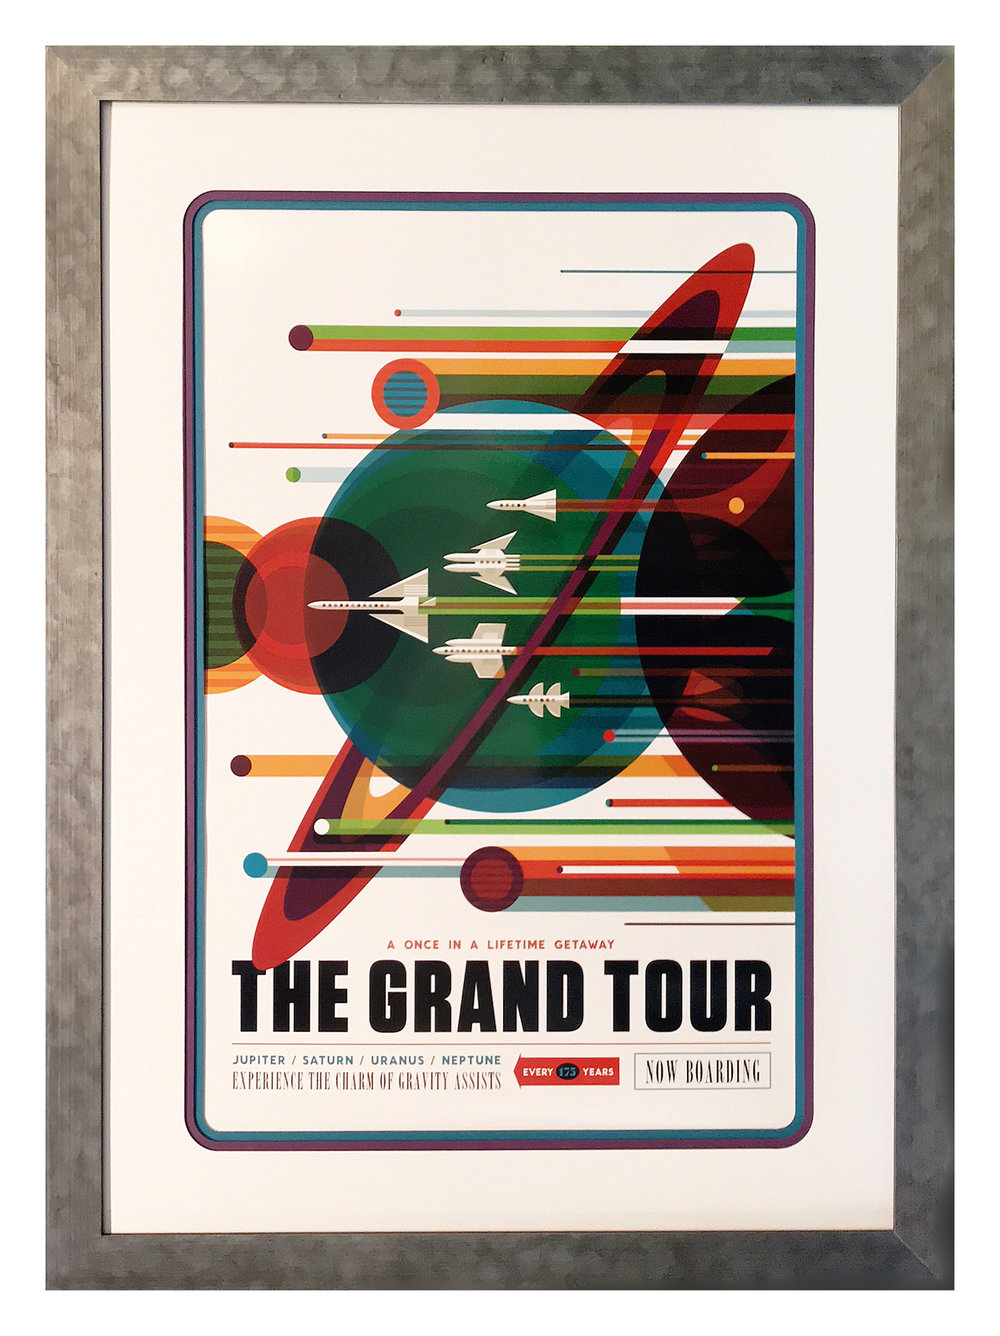 This fanciful interplanetary travel poster was designed by NASA's Jet Propulsion Laboratory. To harmonize with the poster's retro look, triple mats with rounded corners and coordinating colors were paired with a polished metal-veneer frame that suggests the metal skin of a space craft.